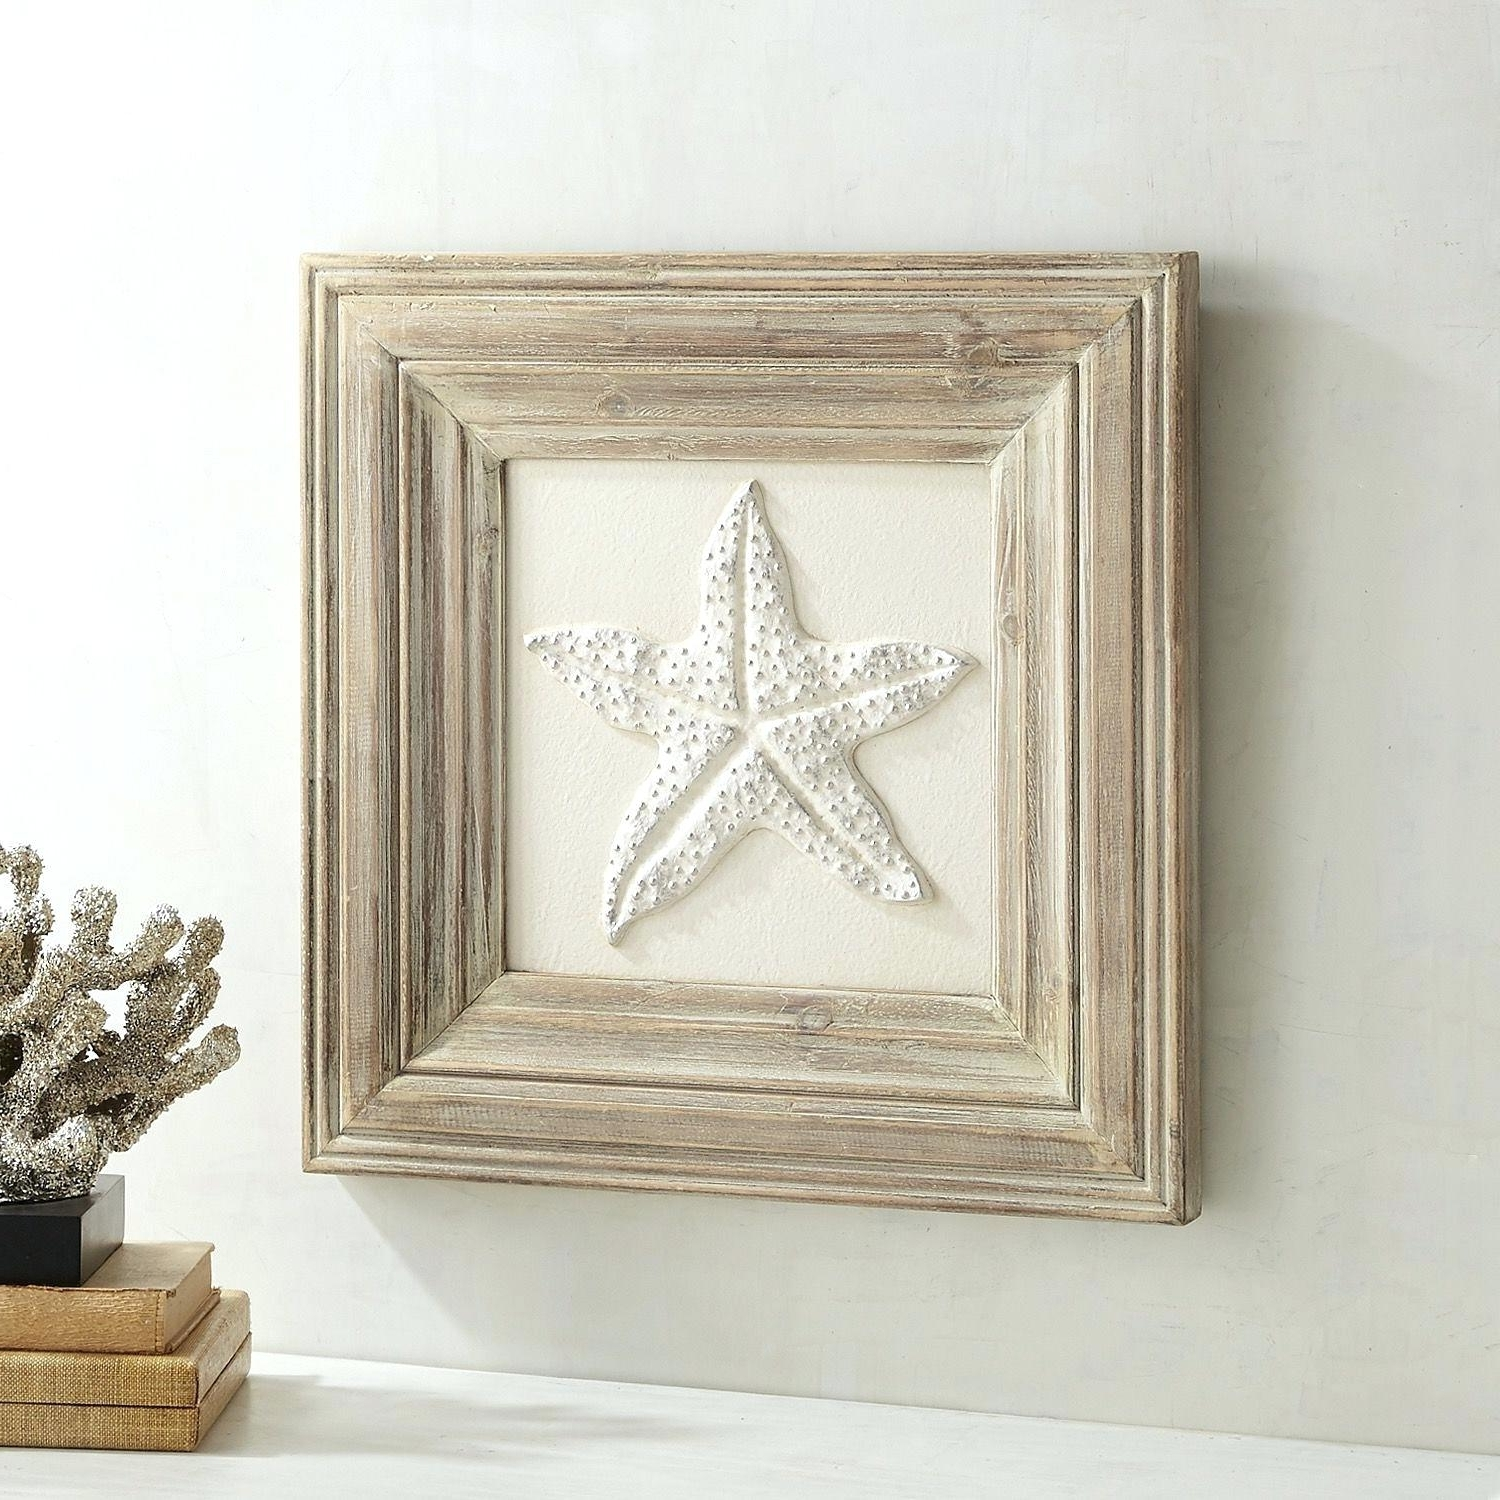 2018 Awesome Starfish Wall Decor Large Starfish Sand Dollar For Wall Regarding Large Starfish Wall Decors (View 1 of 15)